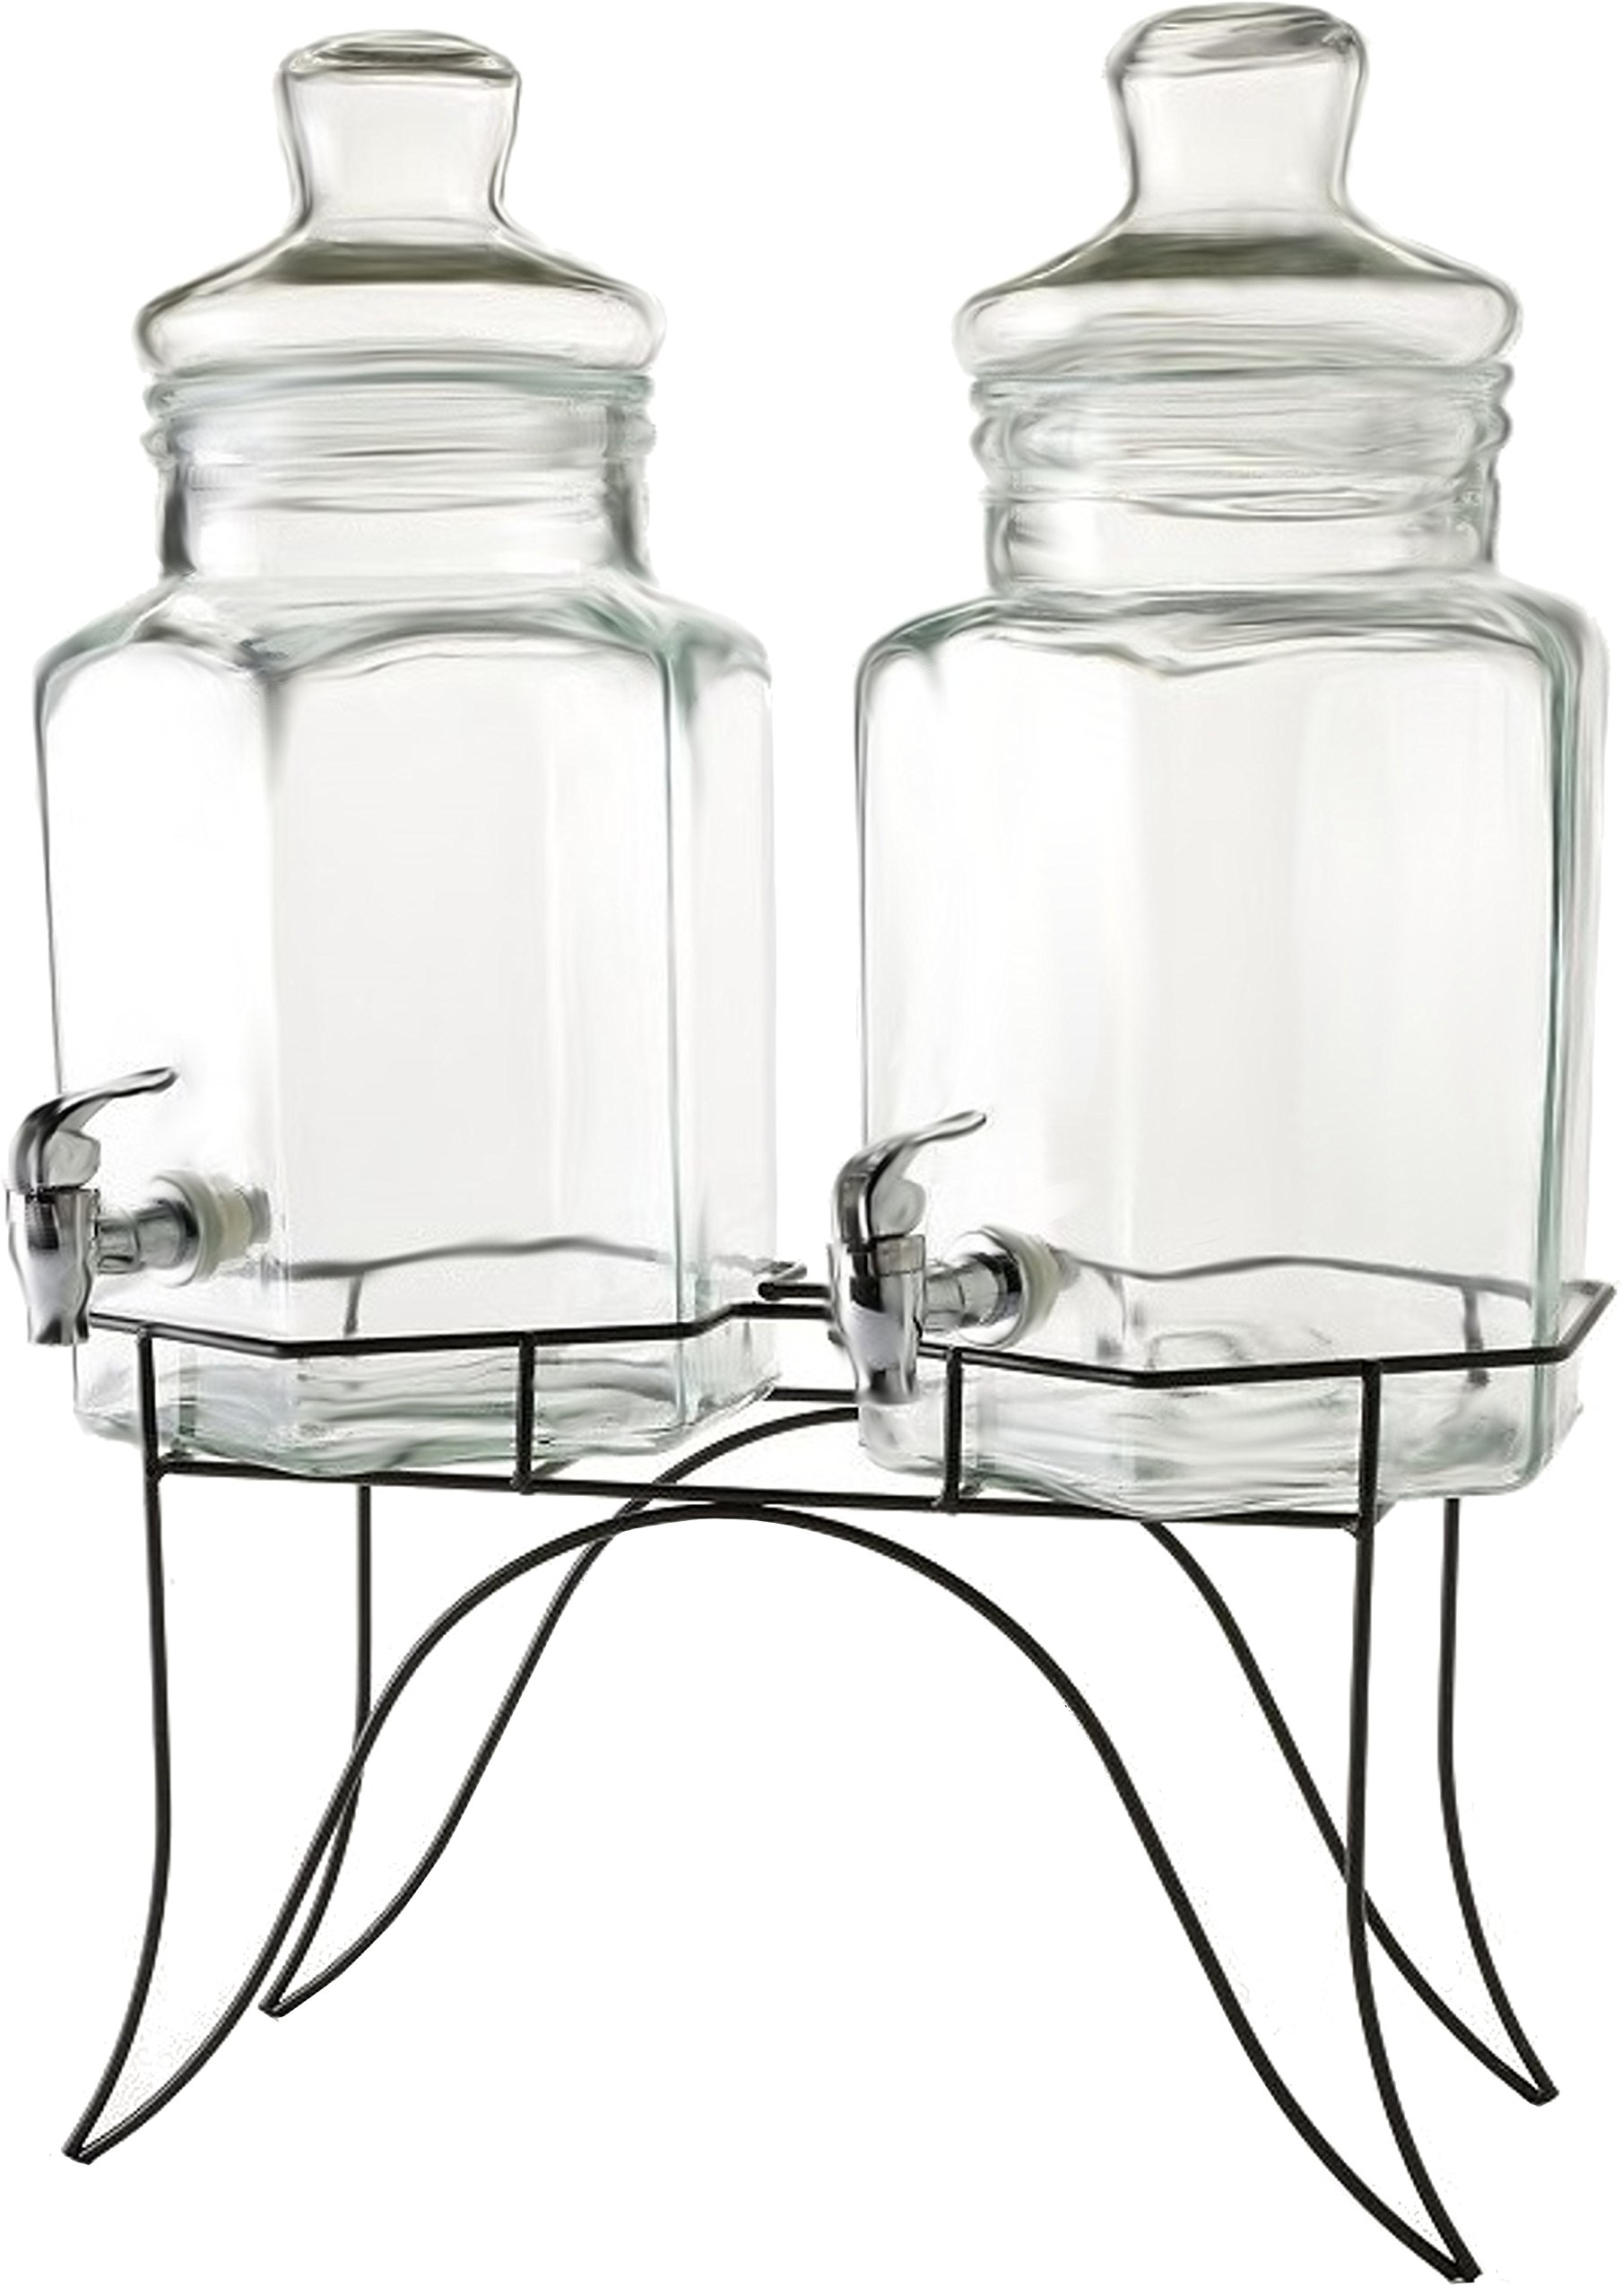 Circleware 66916 Double Beverage Dispensers with Stand and Spigot, Fun Party New Entertainment Home Kitchen Glassware Cold Drink Pitcher for Water, Punch & Iced Tea, 1.3/2.6 Gallon, Dopier